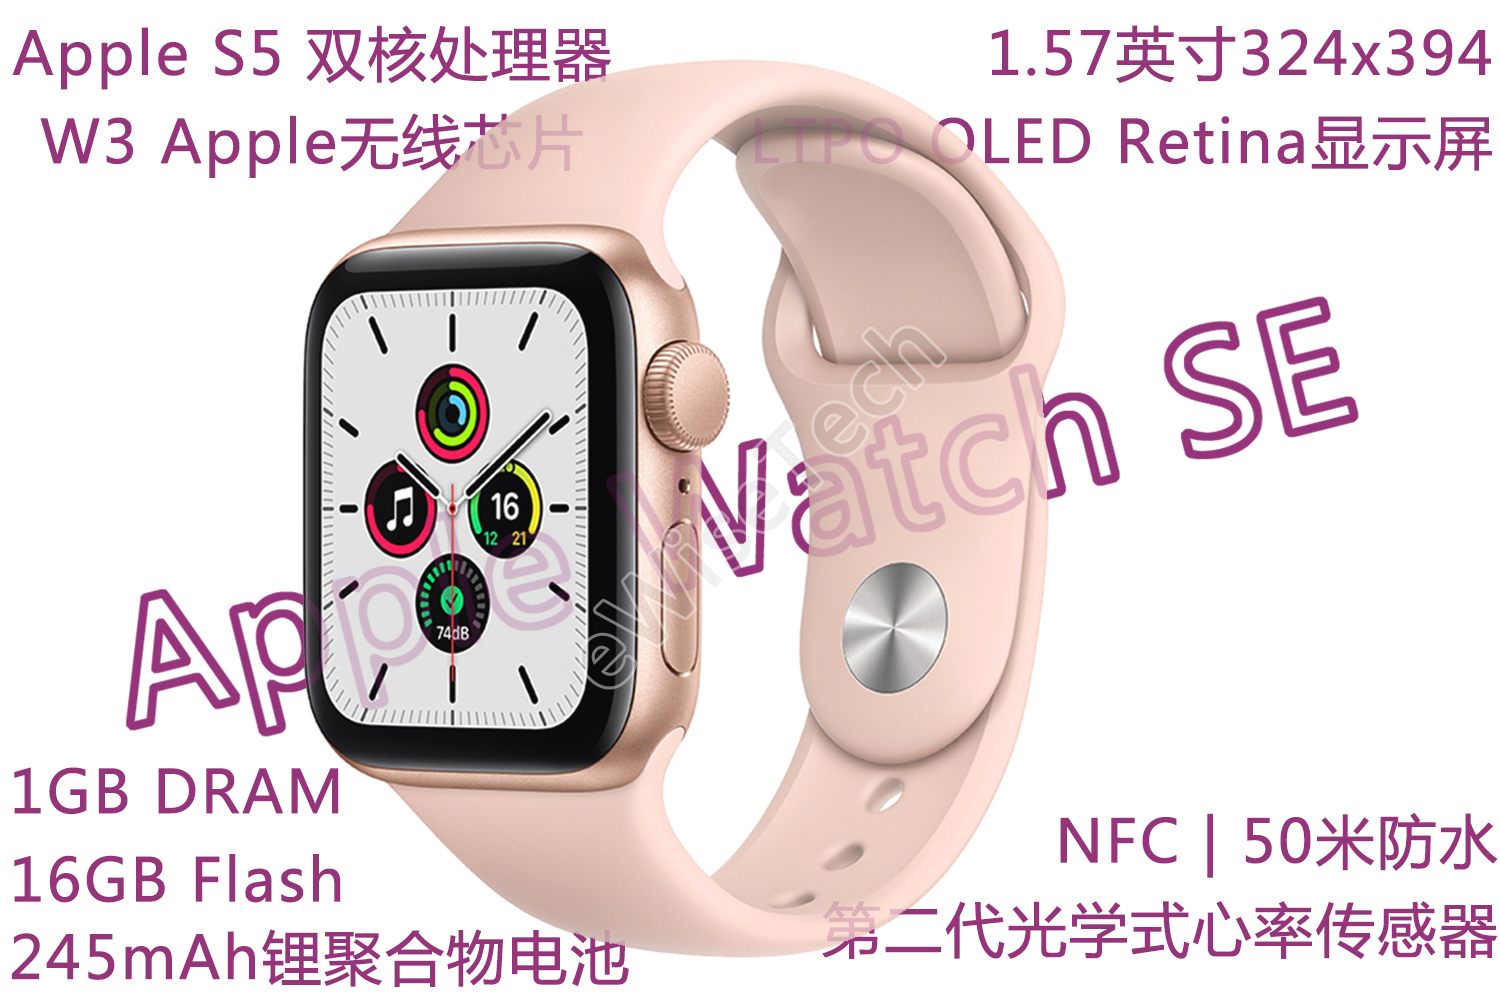 apple watch se值得买吗?拆解评测与apple watch S5对比 分析apple watch se参数